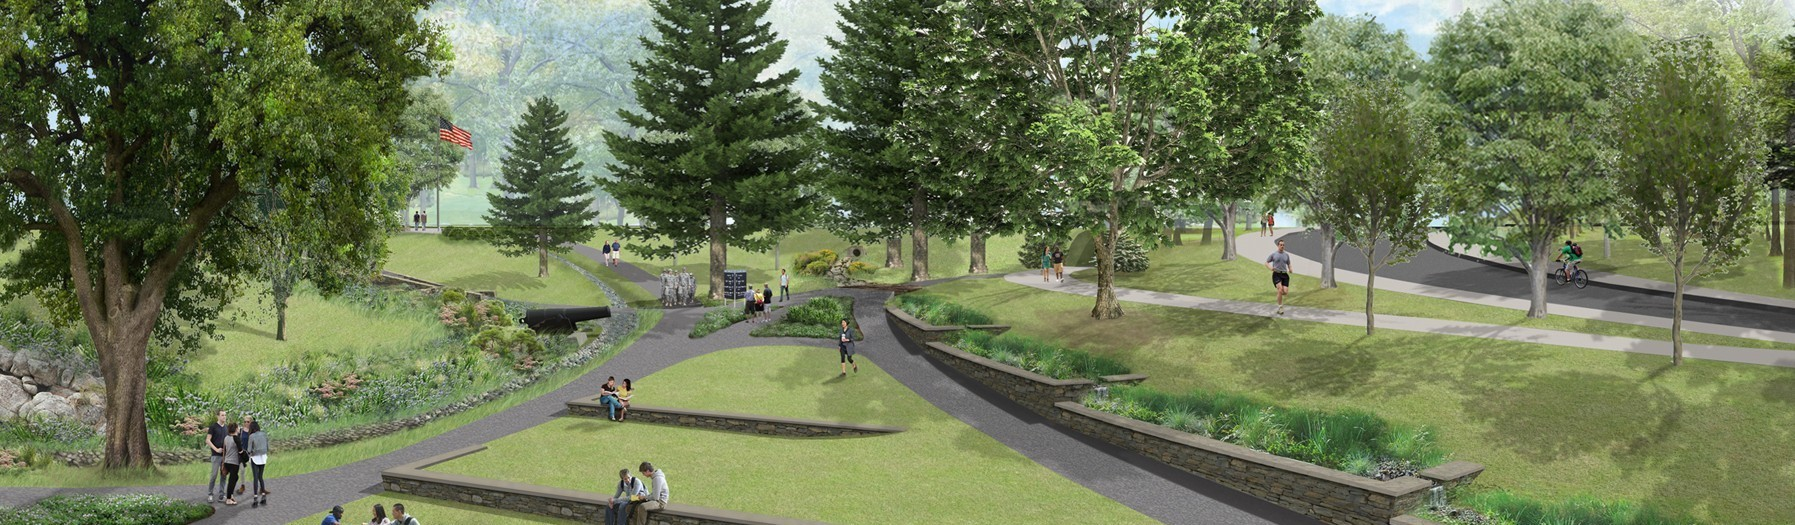 Image of CAD model park